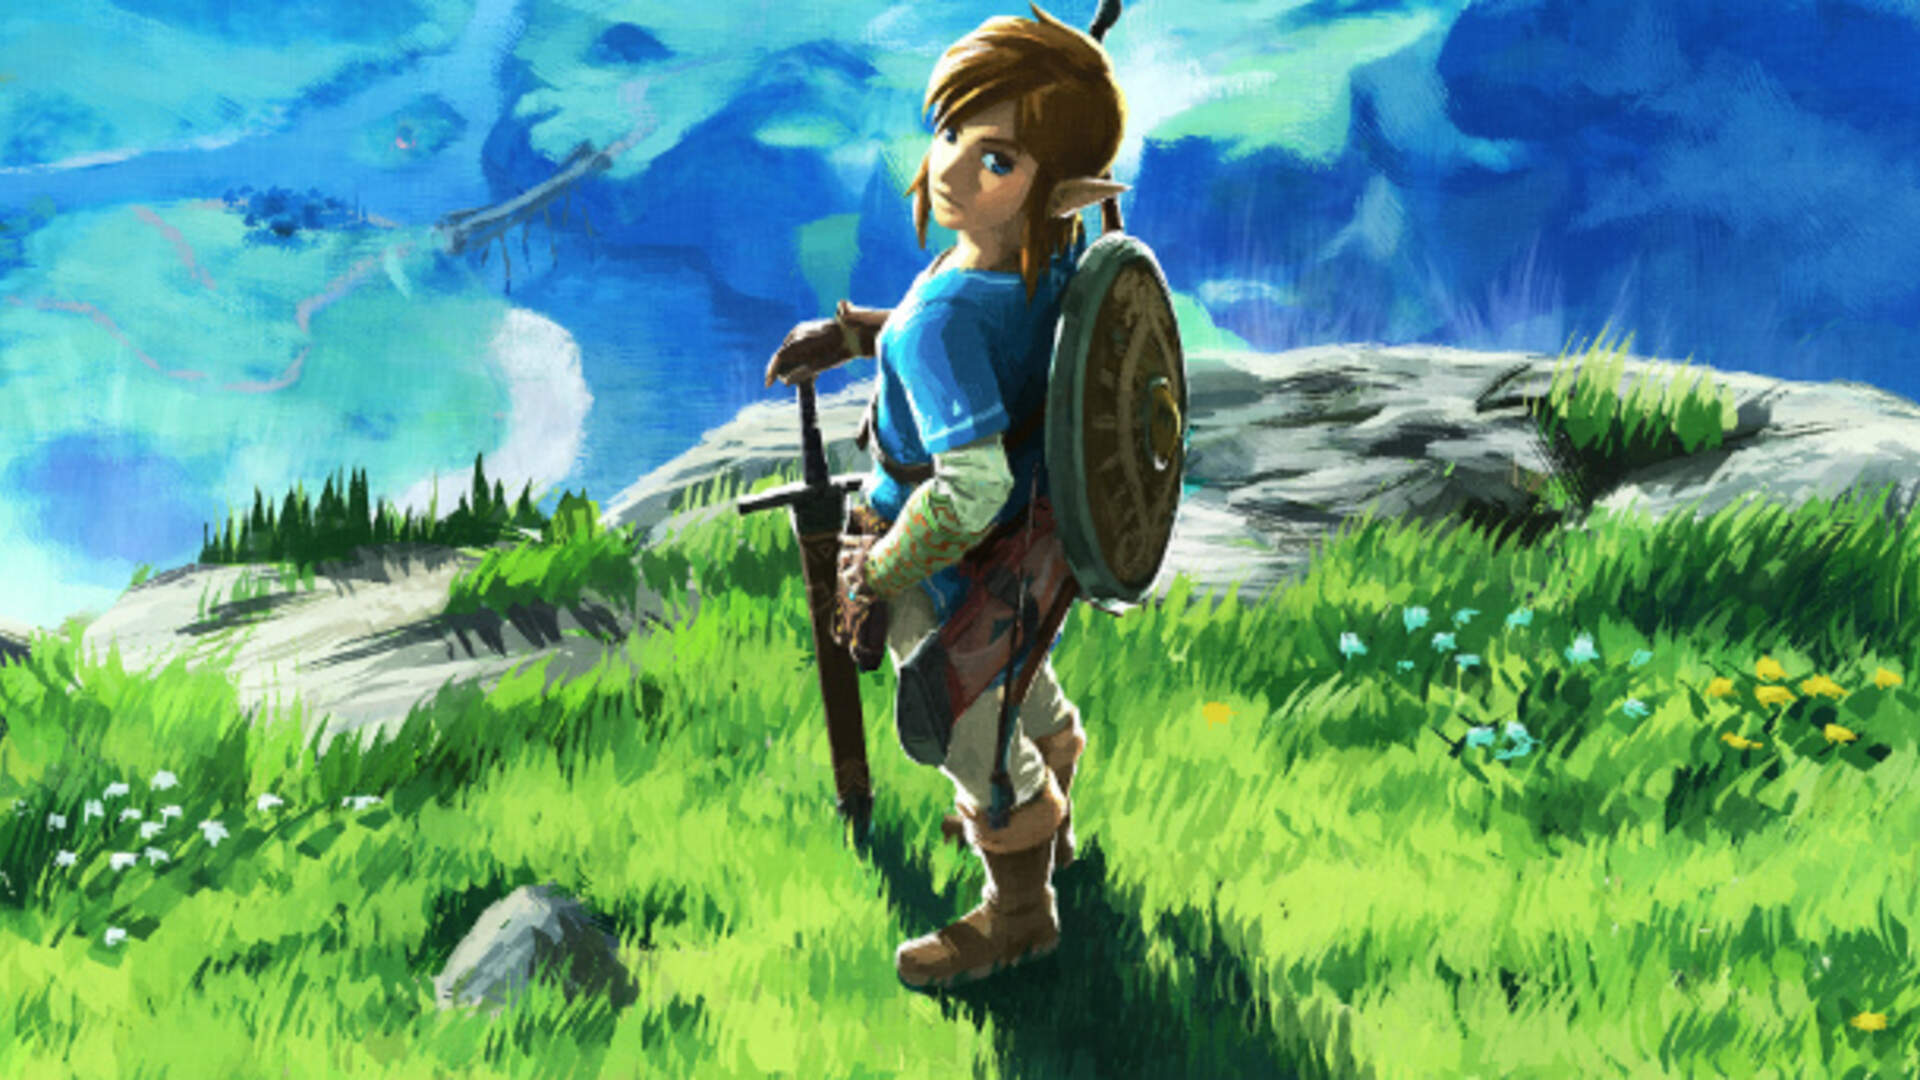 The Legend of Zelda: Breath of the Wild Coming to Switch on March 3, 2017